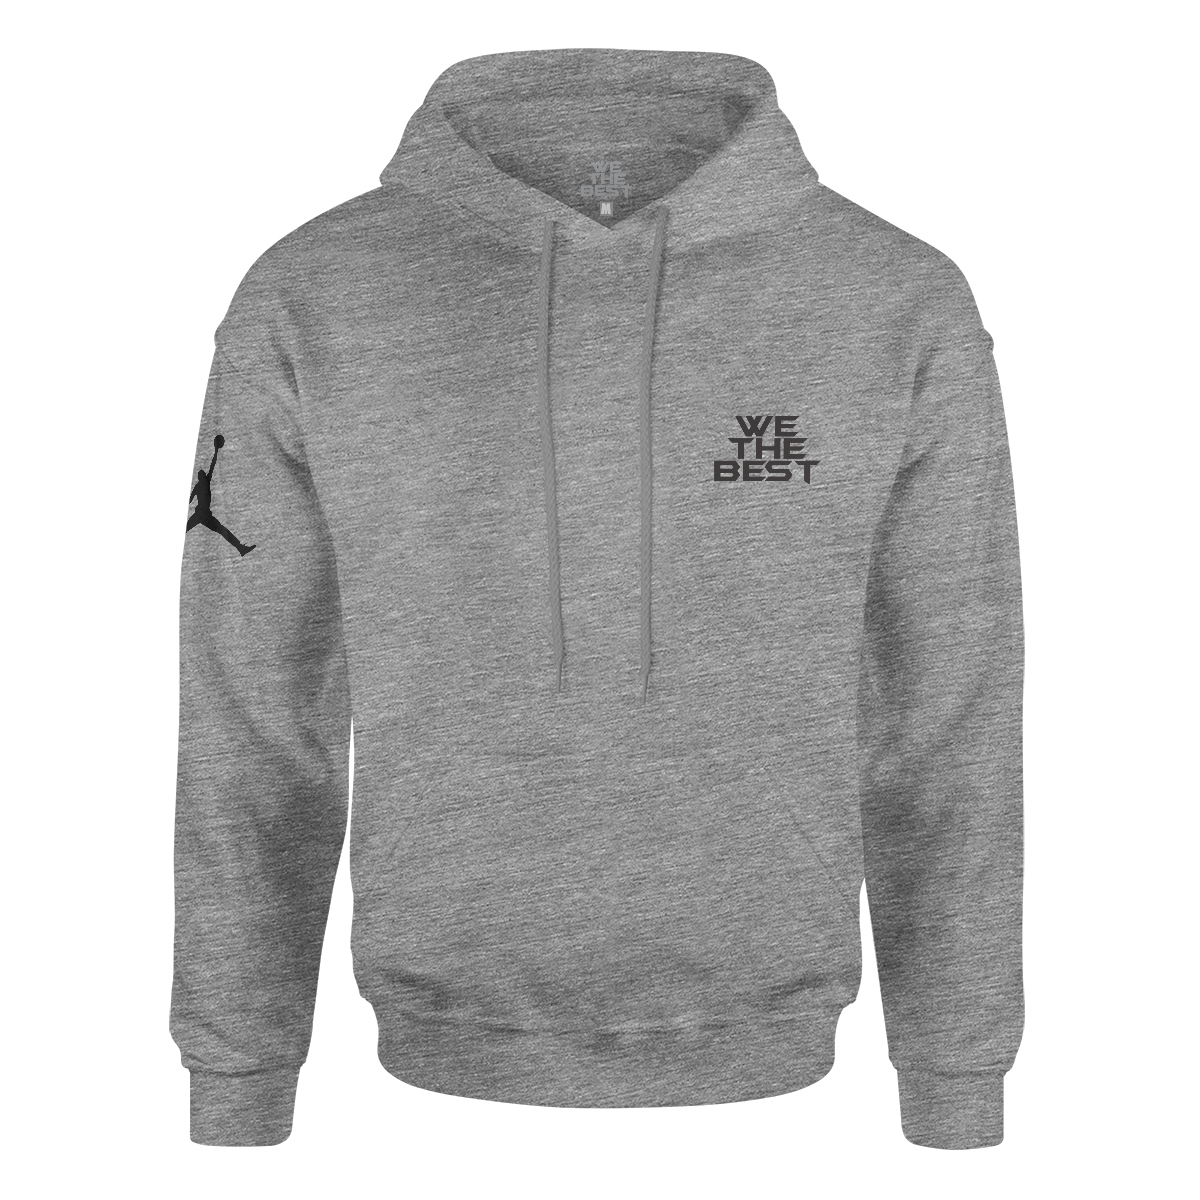 DJ Khaled x Jordan Leather Sneakers Hoodie - Grey + Father of Asahd Album Download